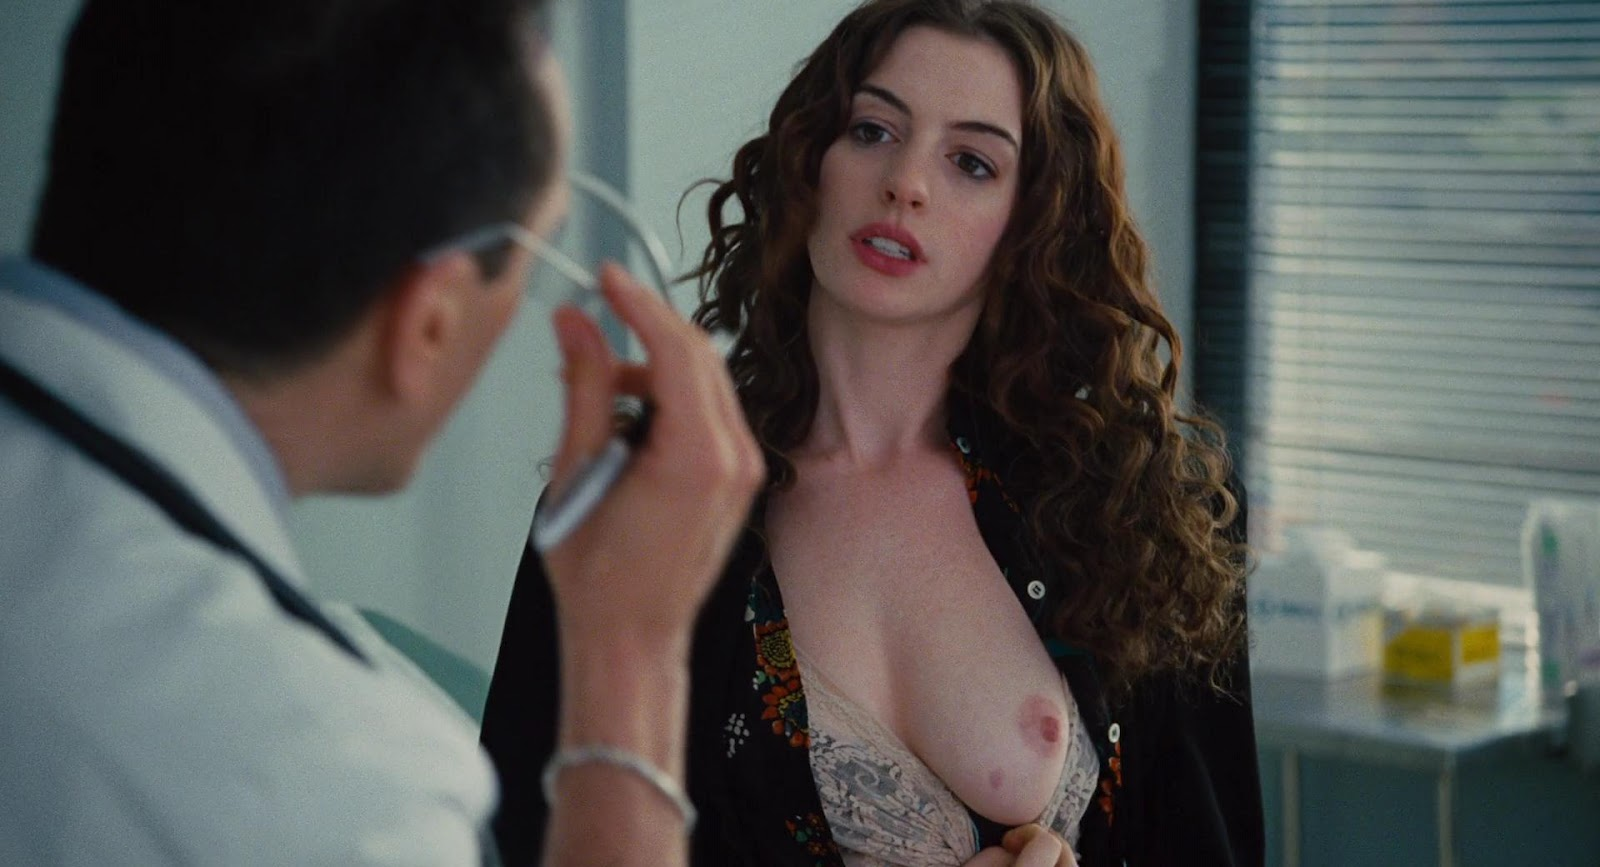 http://2.bp.blogspot.com/-iA9z5f7CUYE/UDSQsrlJxjI/AAAAAAAACHs/0oFyqCDOttg/s1600/Anne+Hathaway+-+Love+and+Other+Drugs++1080p01.jpg